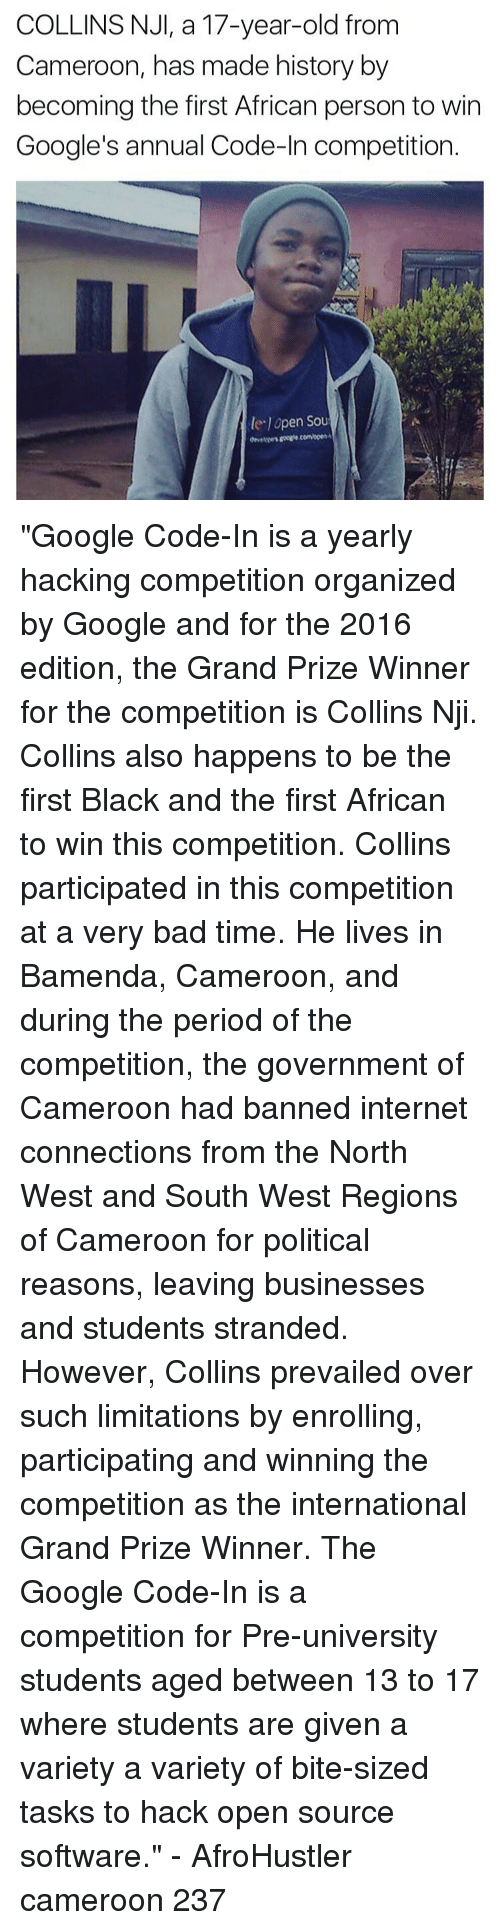 """North West: COLLINS NJI, a 17-year-old from  Cameroon, has made history by  becoming the first African person to win  Google's annual Code-In competition  le lopen Sou """"Google Code-In is a yearly hacking competition organized by Google and for the 2016 edition, the Grand Prize Winner for the competition is Collins Nji. Collins also happens to be the first Black and the first African to win this competition. Collins participated in this competition at a very bad time. He lives in Bamenda, Cameroon, and during the period of the competition, the government of Cameroon had banned internet connections from the North West and South West Regions of Cameroon for political reasons, leaving businesses and students stranded. However, Collins prevailed over such limitations by enrolling, participating and winning the competition as the international Grand Prize Winner. The Google Code-In is a competition for Pre-university students aged between 13 to 17 where students are given a variety a variety of bite-sized tasks to hack open source software."""" - AfroHustler cameroon 237"""